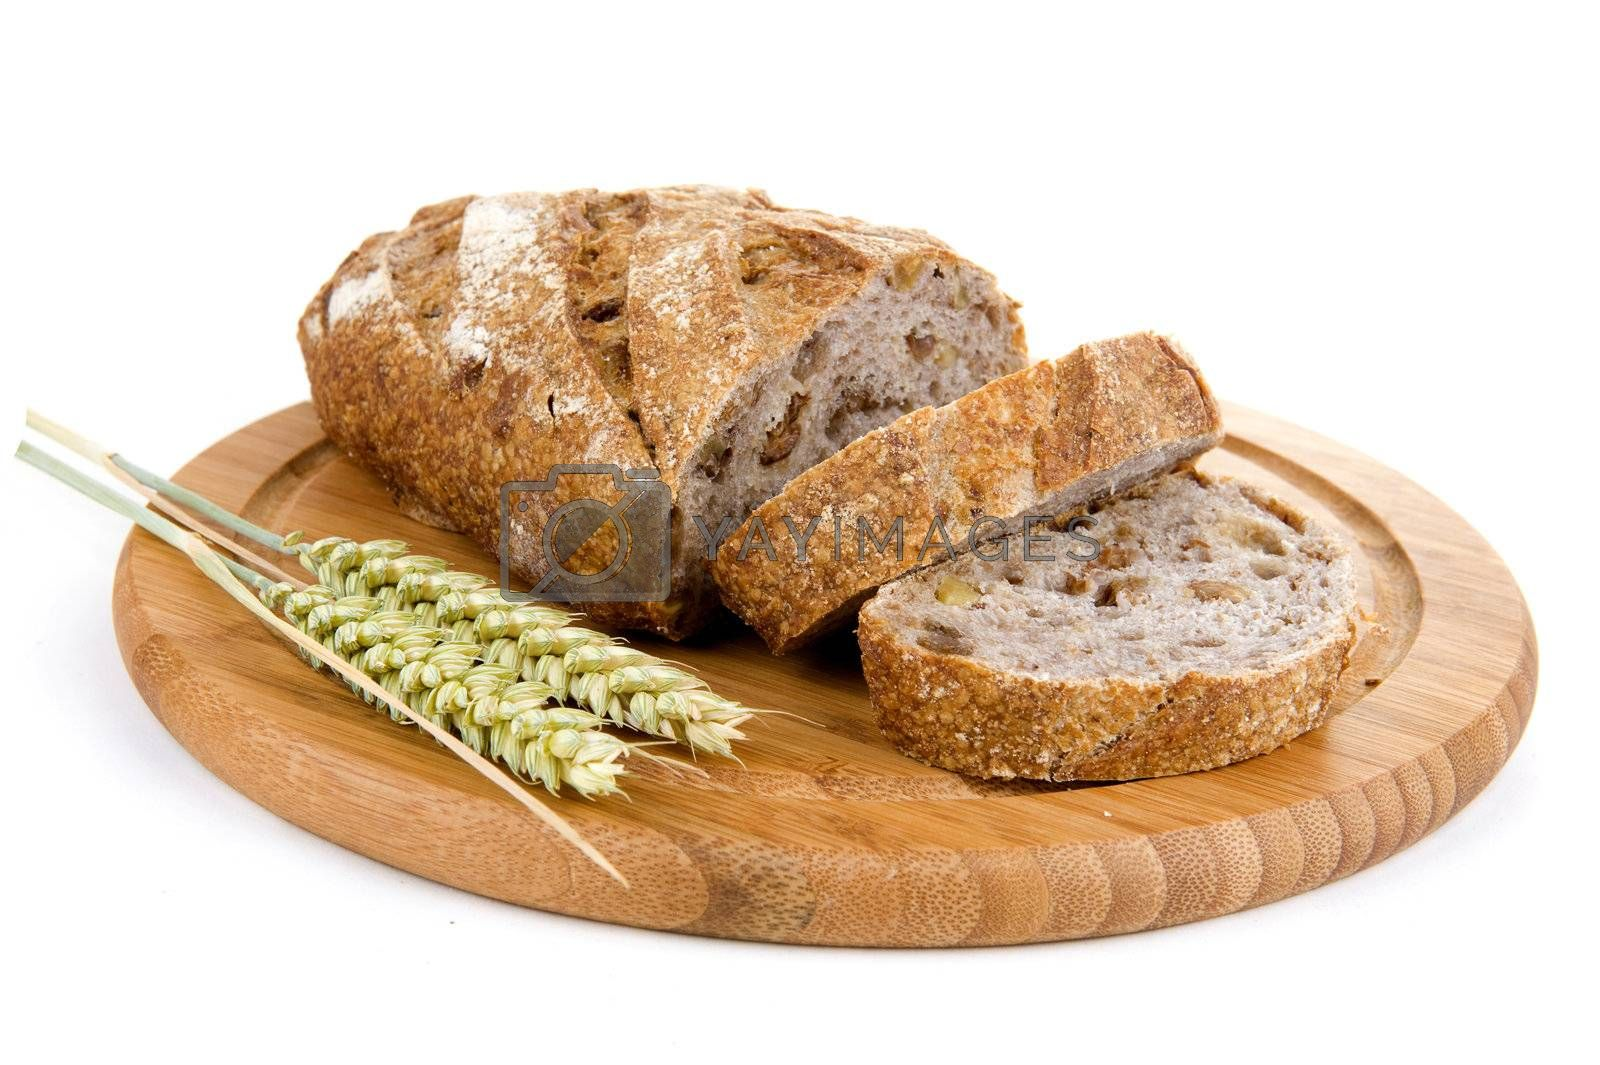 Royalty free image of bread by Gabees